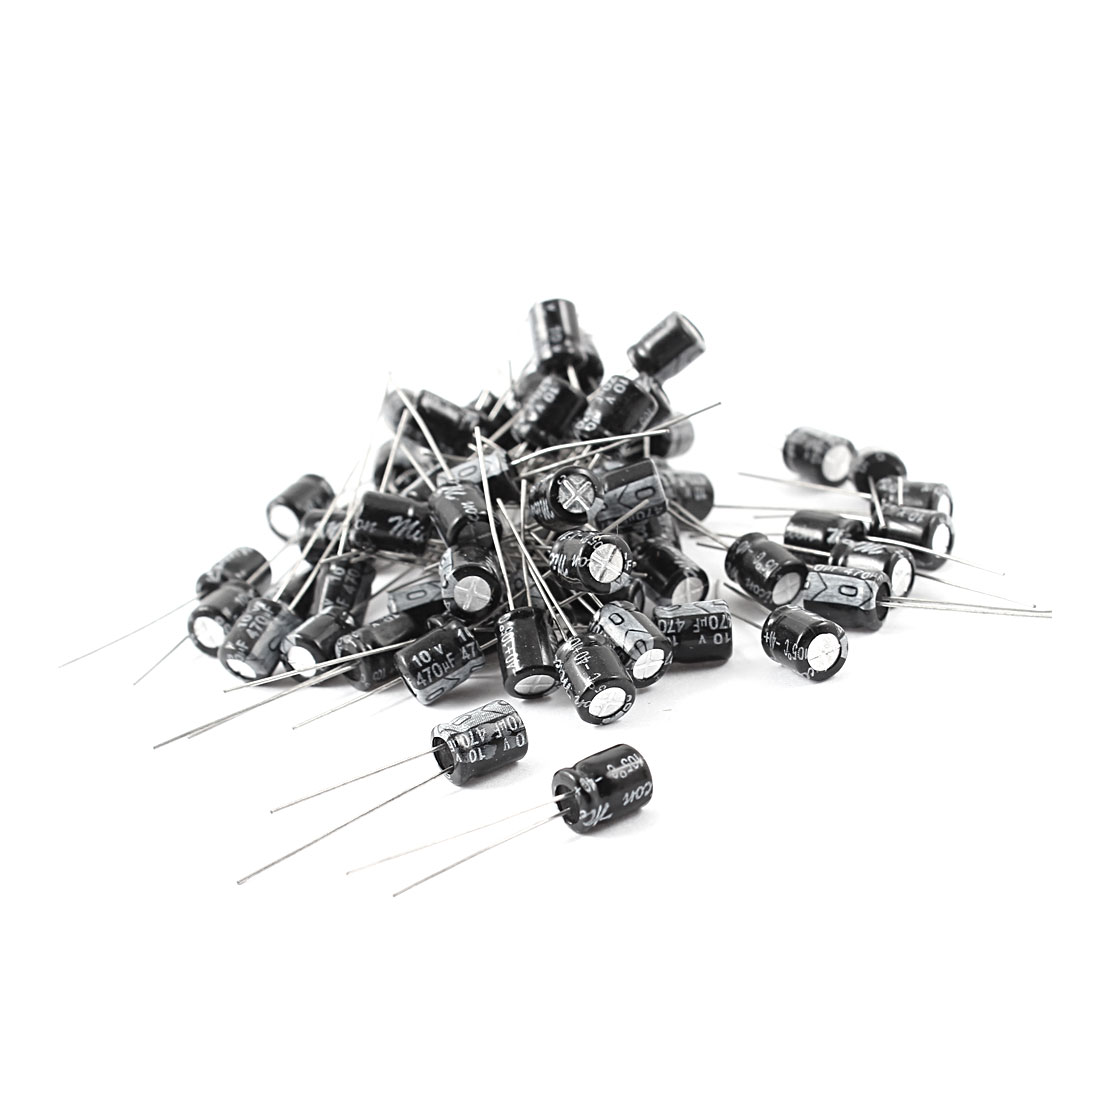 50 Pcs 470uF 10V 105C Radial Electrolytic Capacitors Black 6mm x 8mm